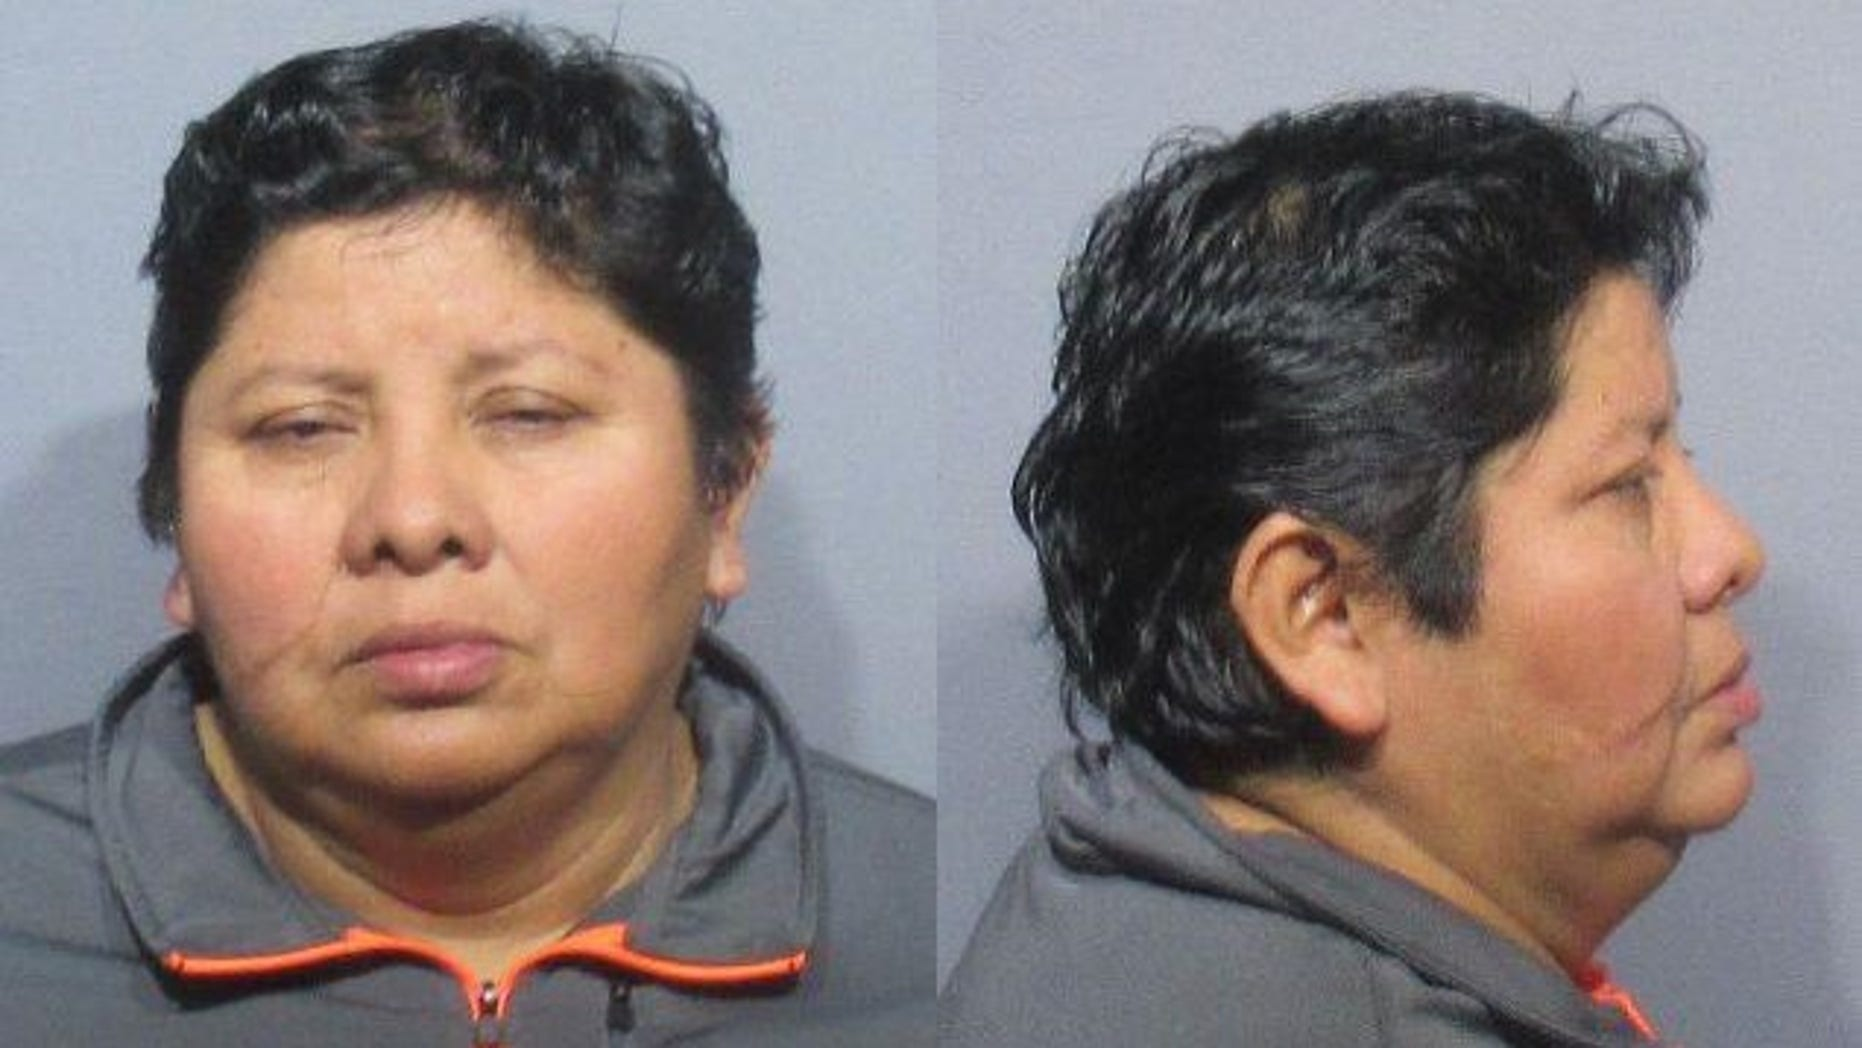 Concepcion Malinek, 49, was arrested on forced labor charges following an federal investigation.